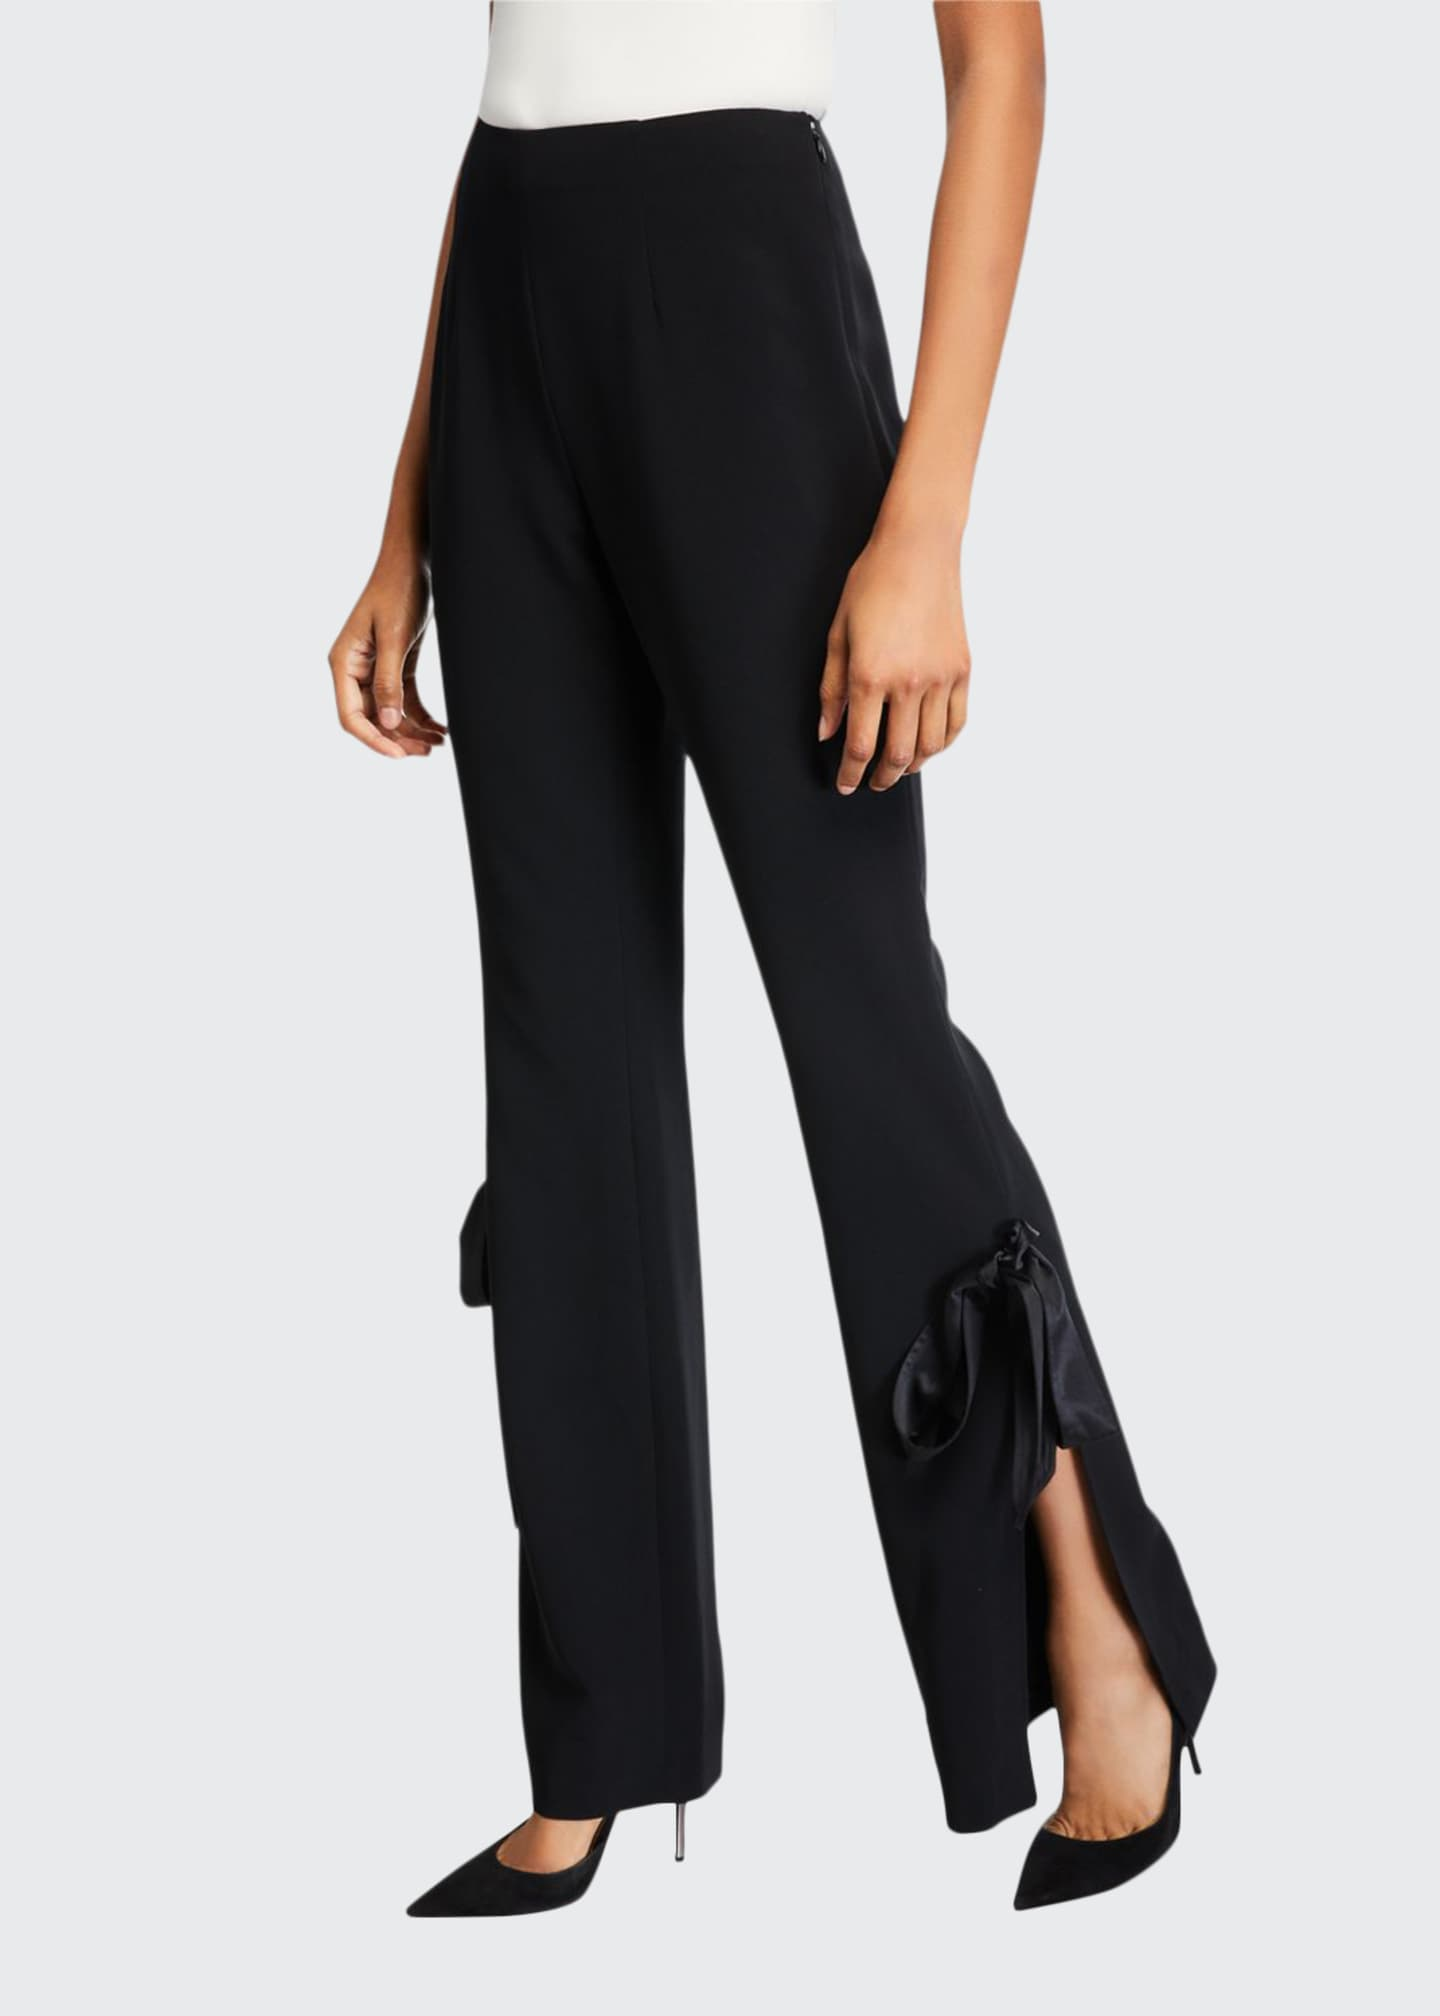 cinq a sept Lou Lou Side-Split Bow Pants